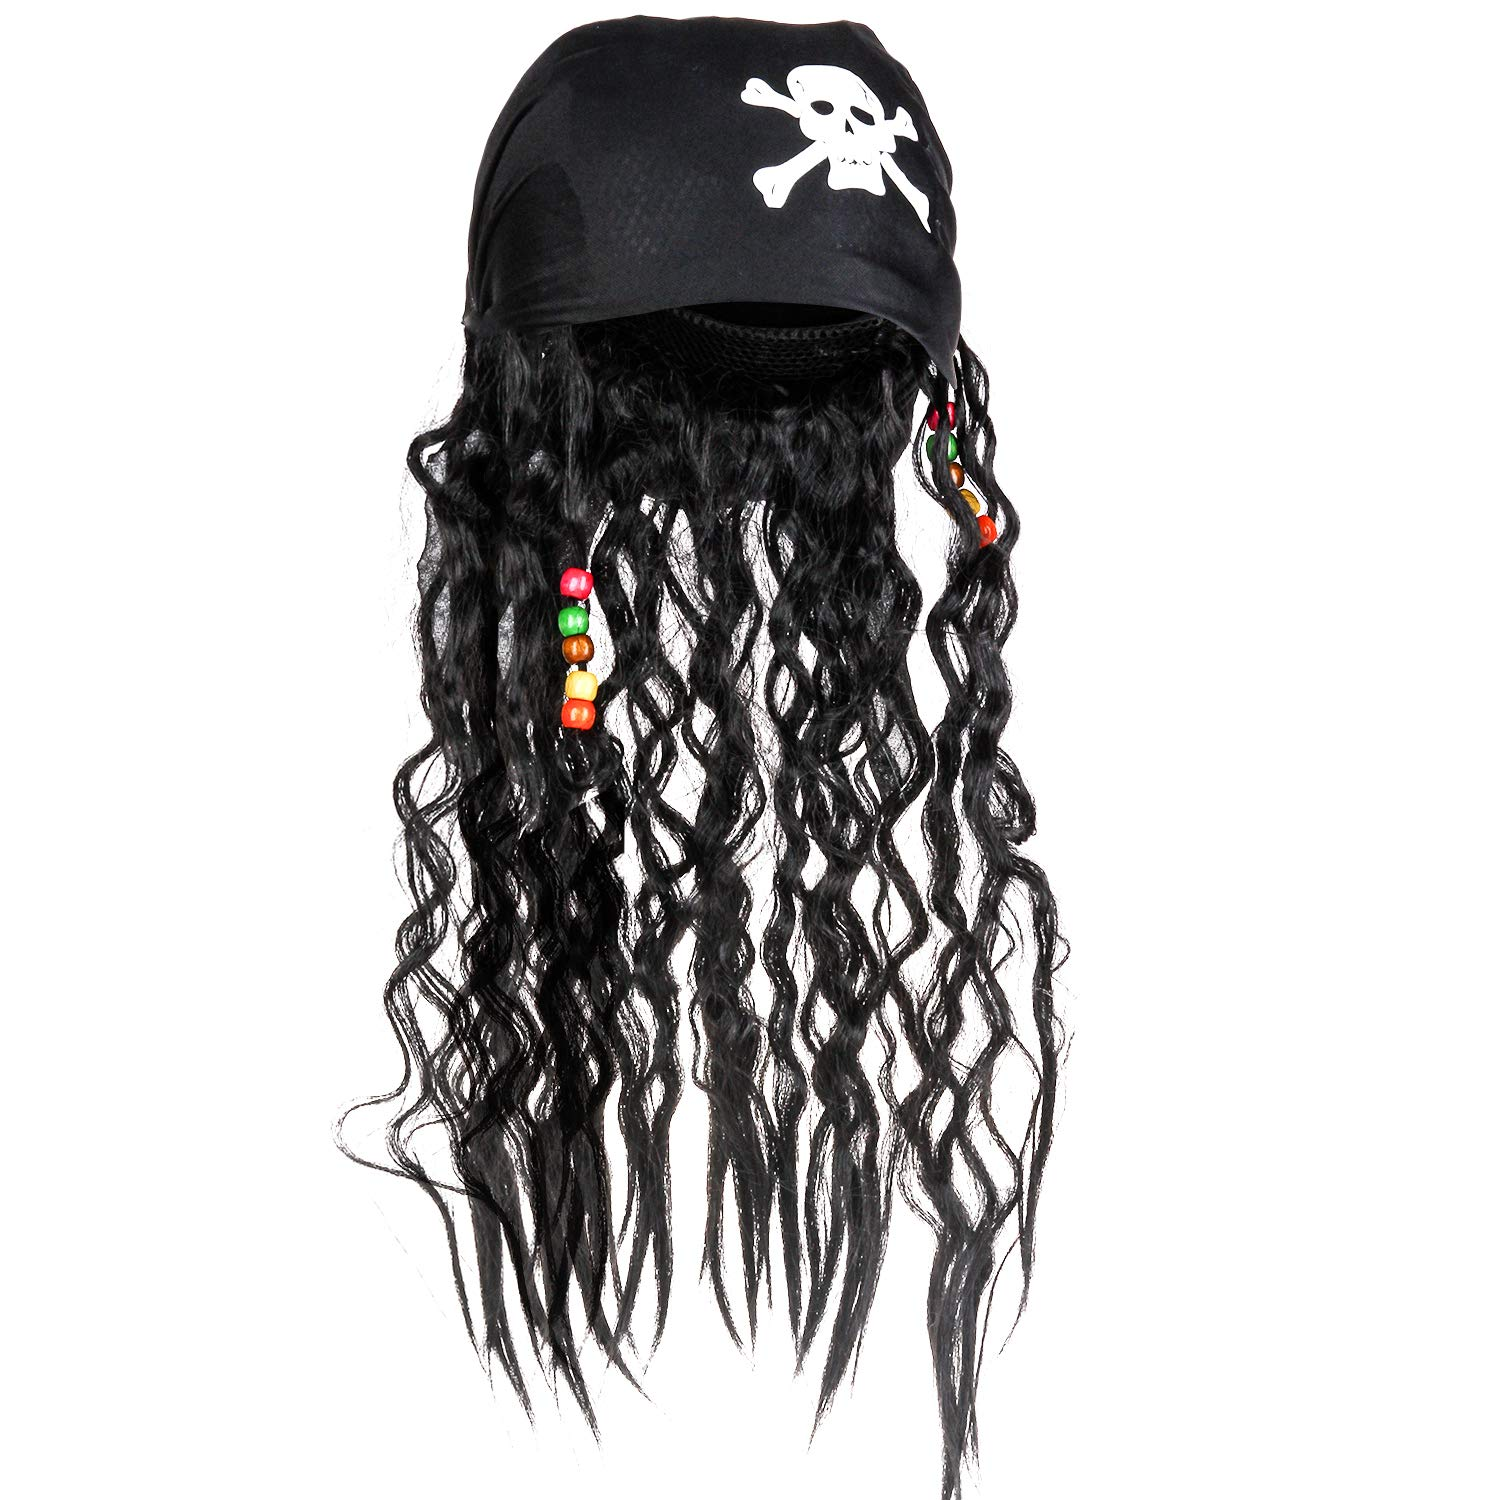 CatchStar Pirate Wig and Bandana Easy Wear Pirate Dreadlock Wig with Realistic Beaded Braids for Men Kid Halloween Costume Accessories